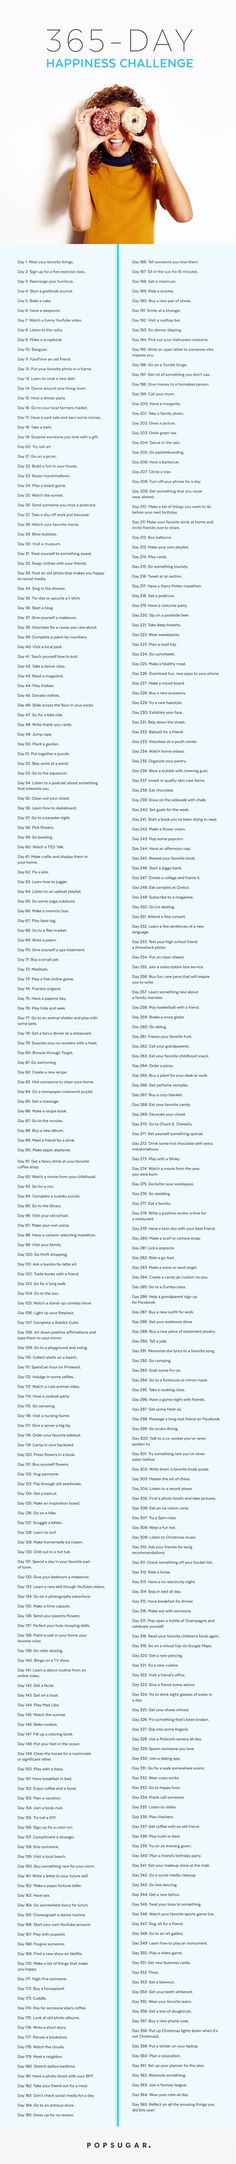 Celebrate your happiness with this 365 Day Happiness Challenge!